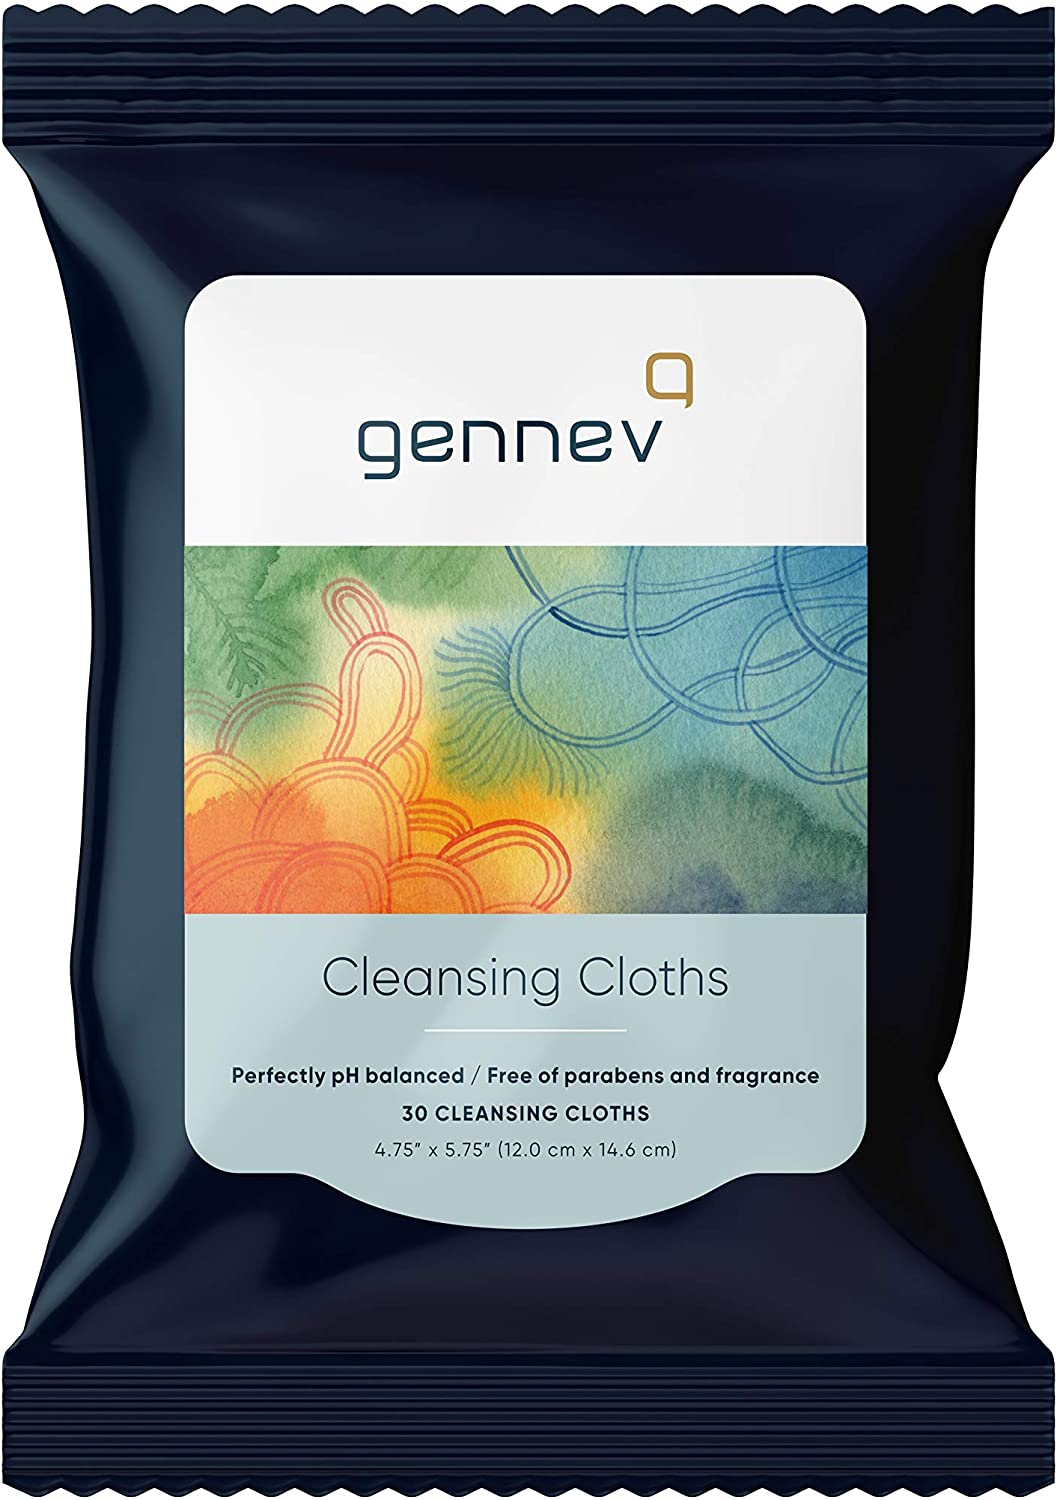 genneve Cleansing Cloths Feminine Wipes for Women